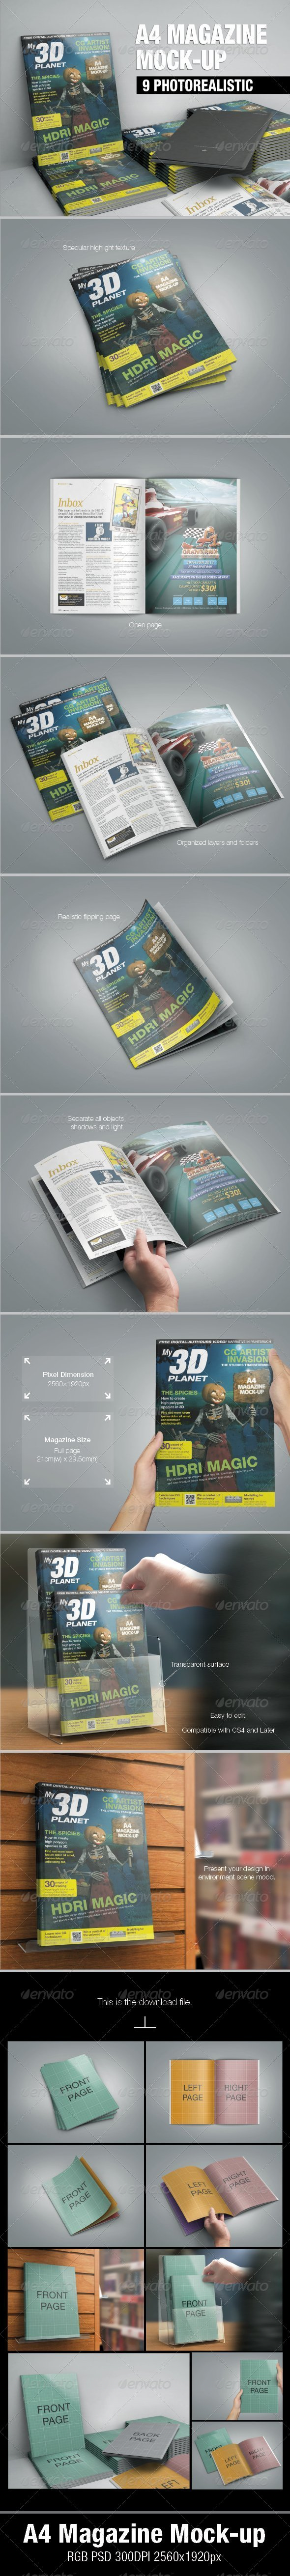 A4 Magazine Mock-up - Magazines Print